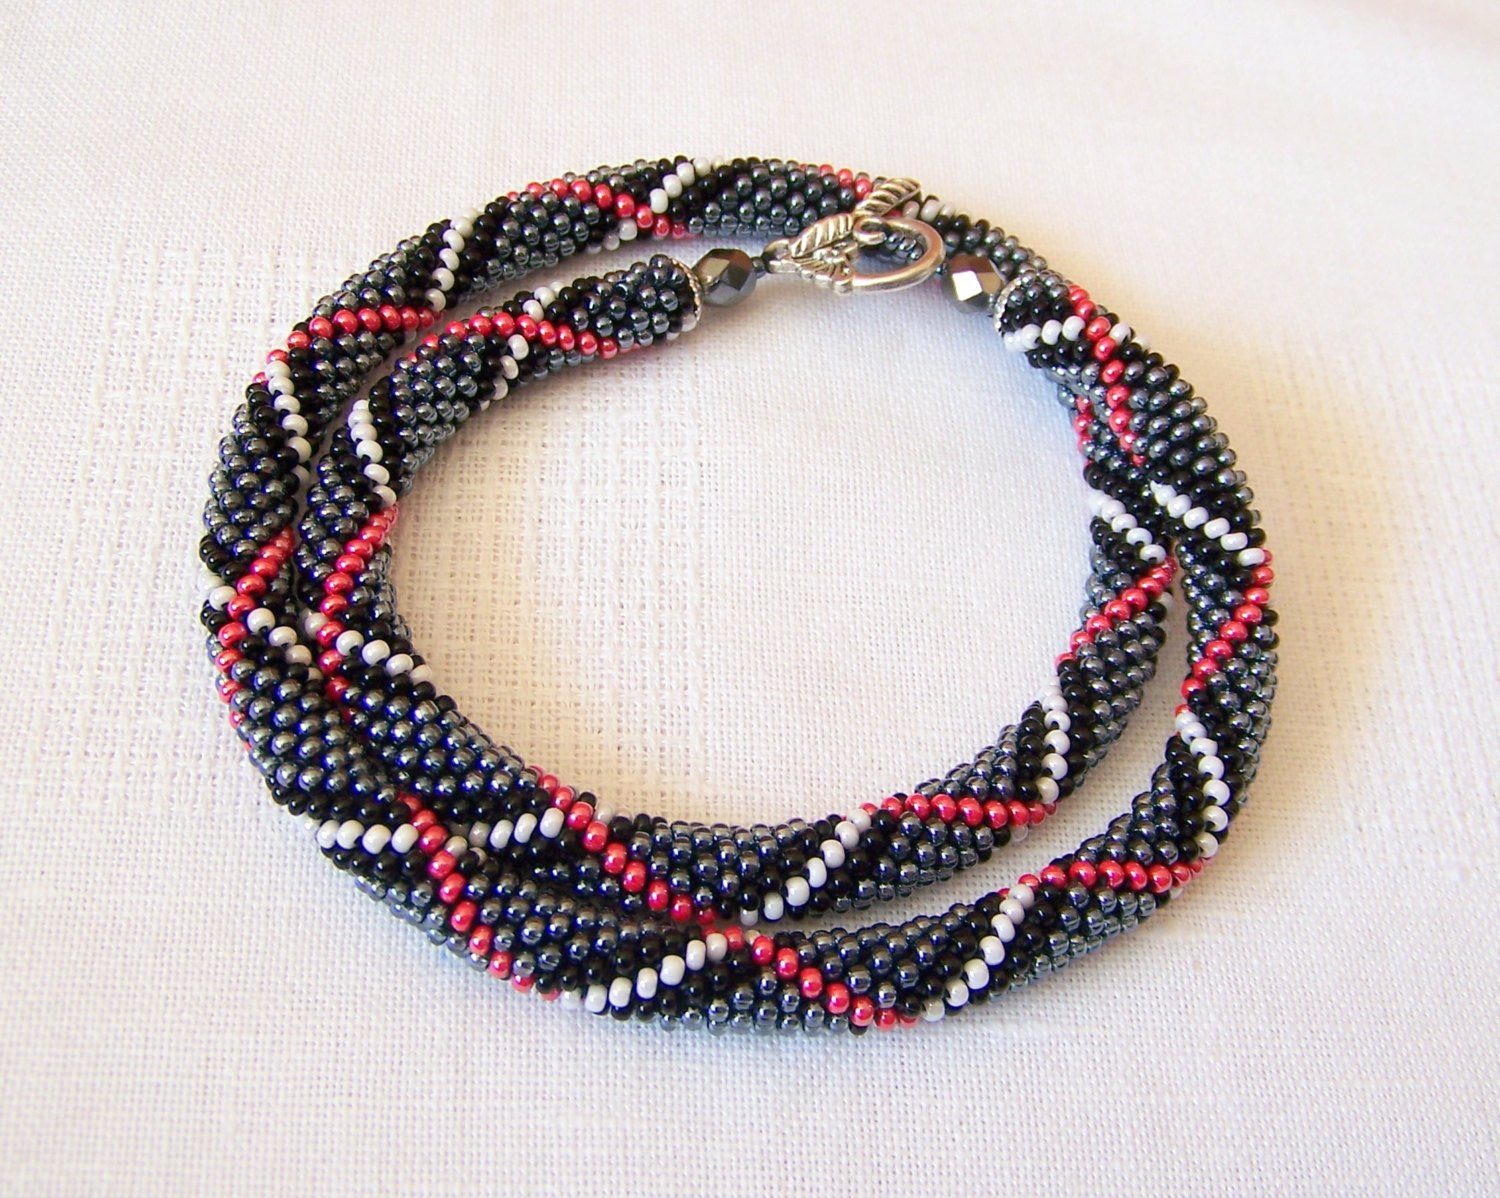 Crochet Beaded Necklace Lovely Beads Crochet Ropes Necklace Beadwork Seed Beads Jewelry Of Contemporary 43 Images Crochet Beaded Necklace